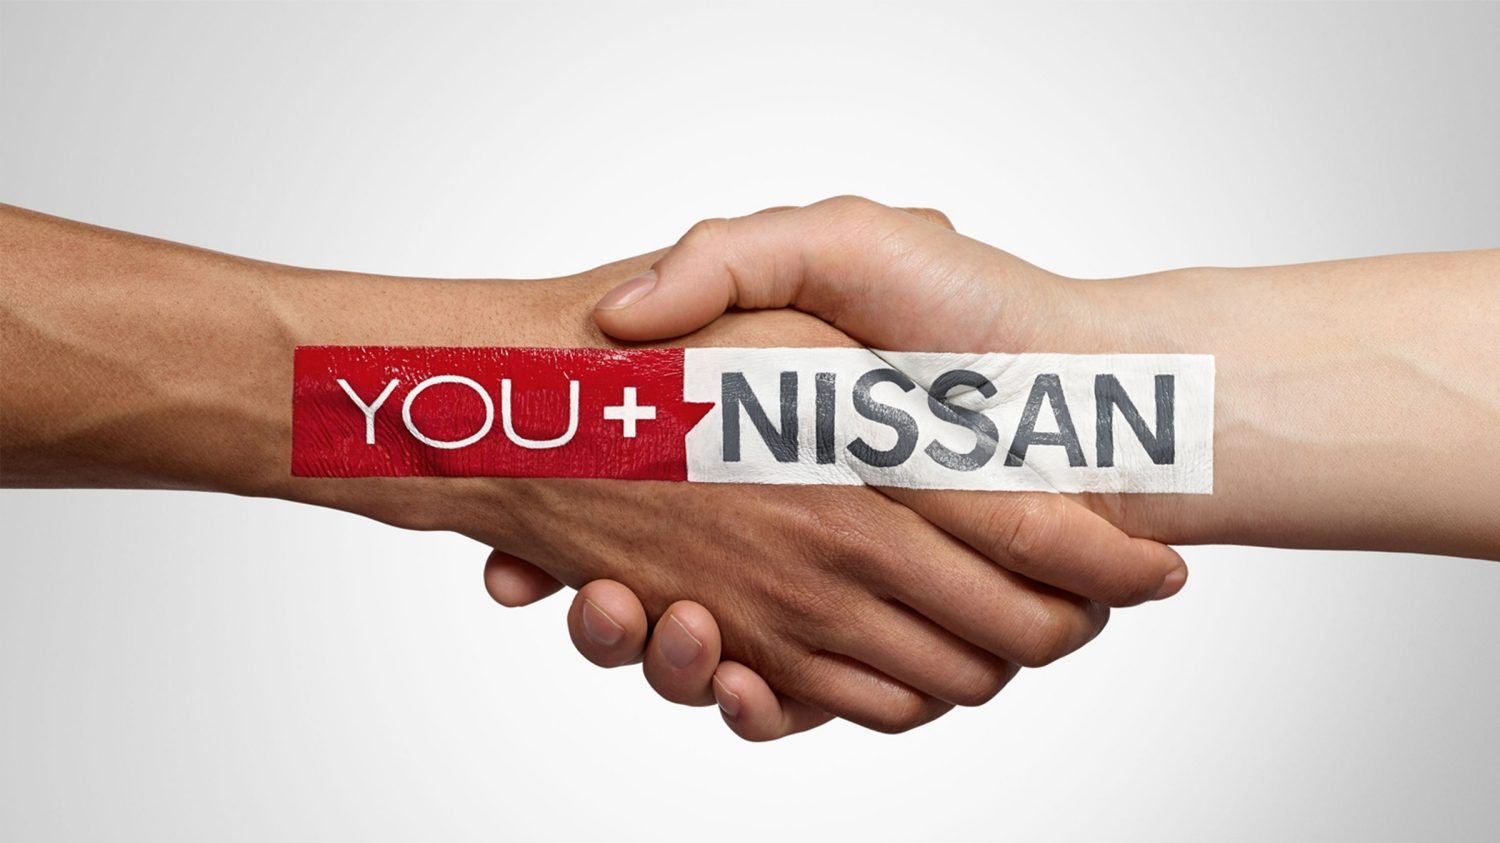 YOU+NISSAN – Logo